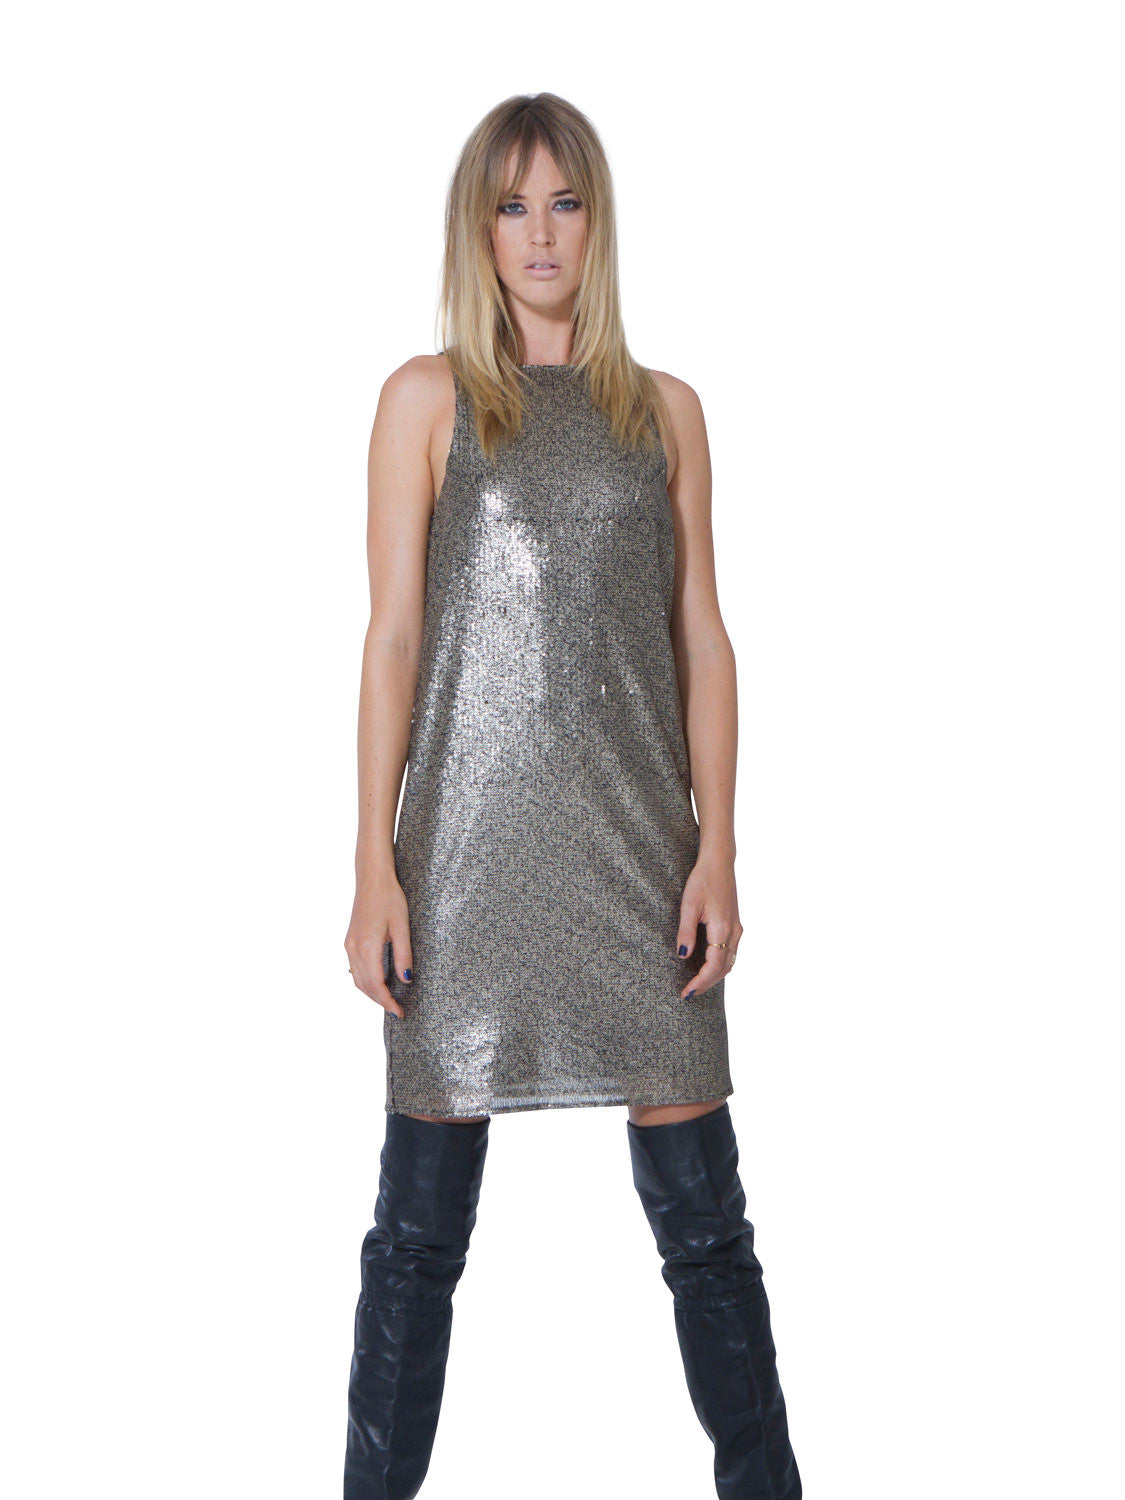 CLOSE TO HEAVEN SEQUIN DRESS - Little Joe Woman by Gail Elliott E-Boutique  - 4